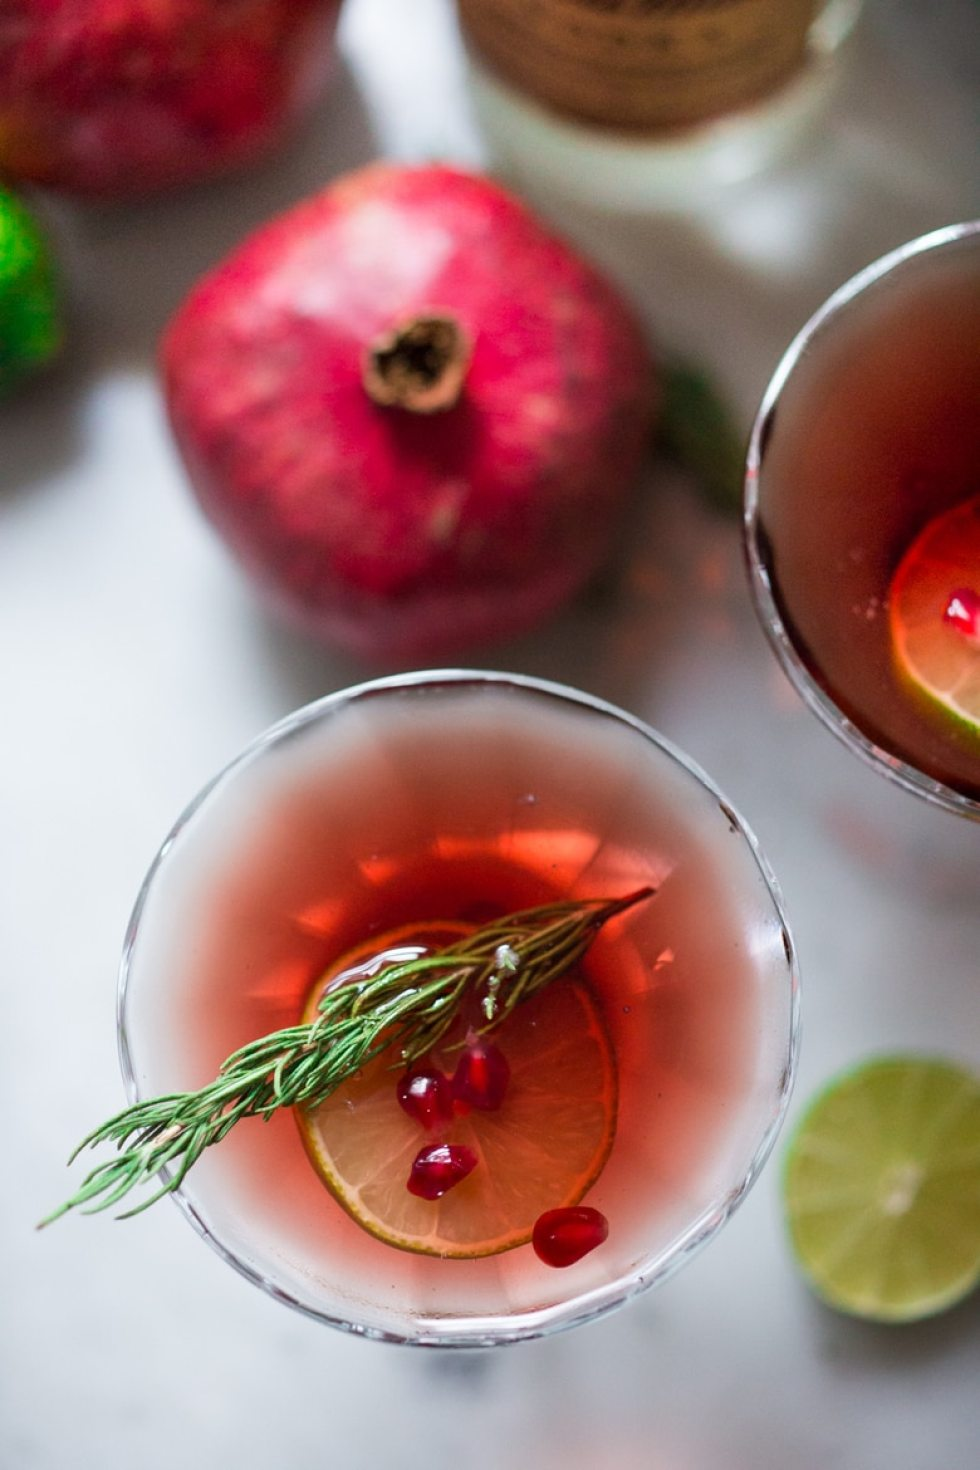 A simple recipe for a Pomegranate Drop with Rosemary ...a refreshing and festive holiday cocktail. | www.feastingathome.com